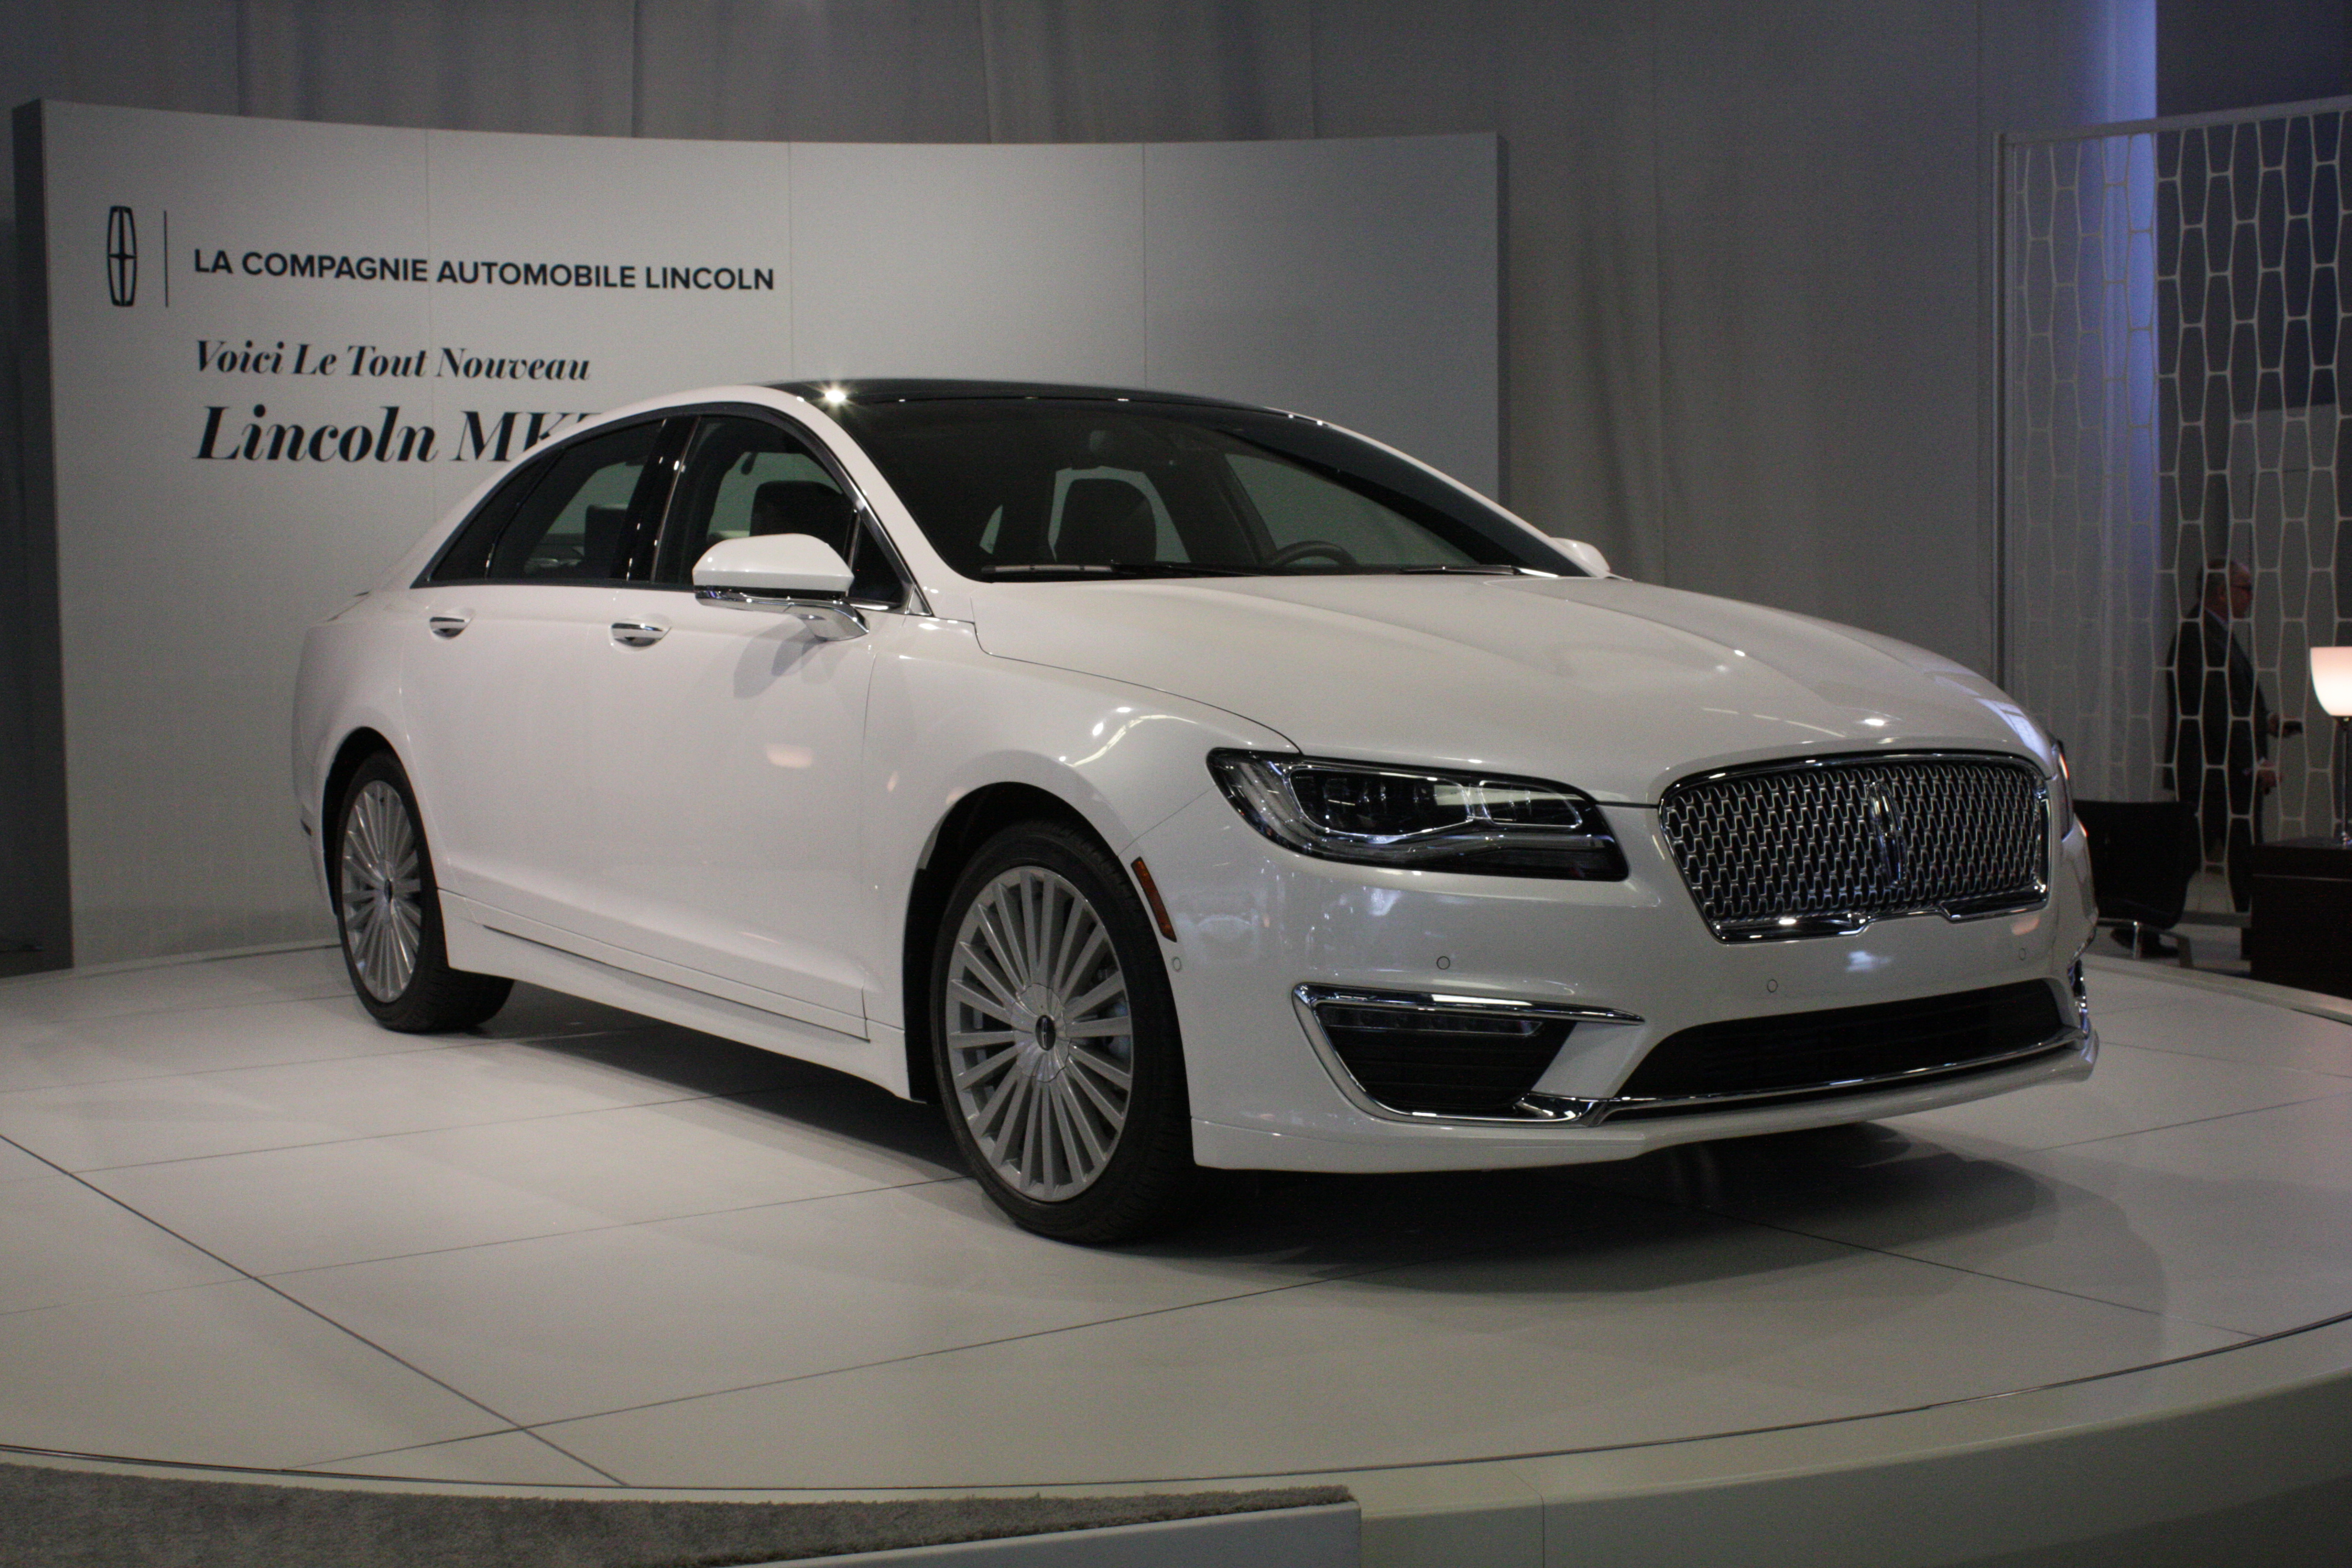 Lincoln presented the Canadian debut of its MKZ mid-size sedan, which wears new front-end styling that will eventually migrate to the rest of brand's line of cars and crossovers.